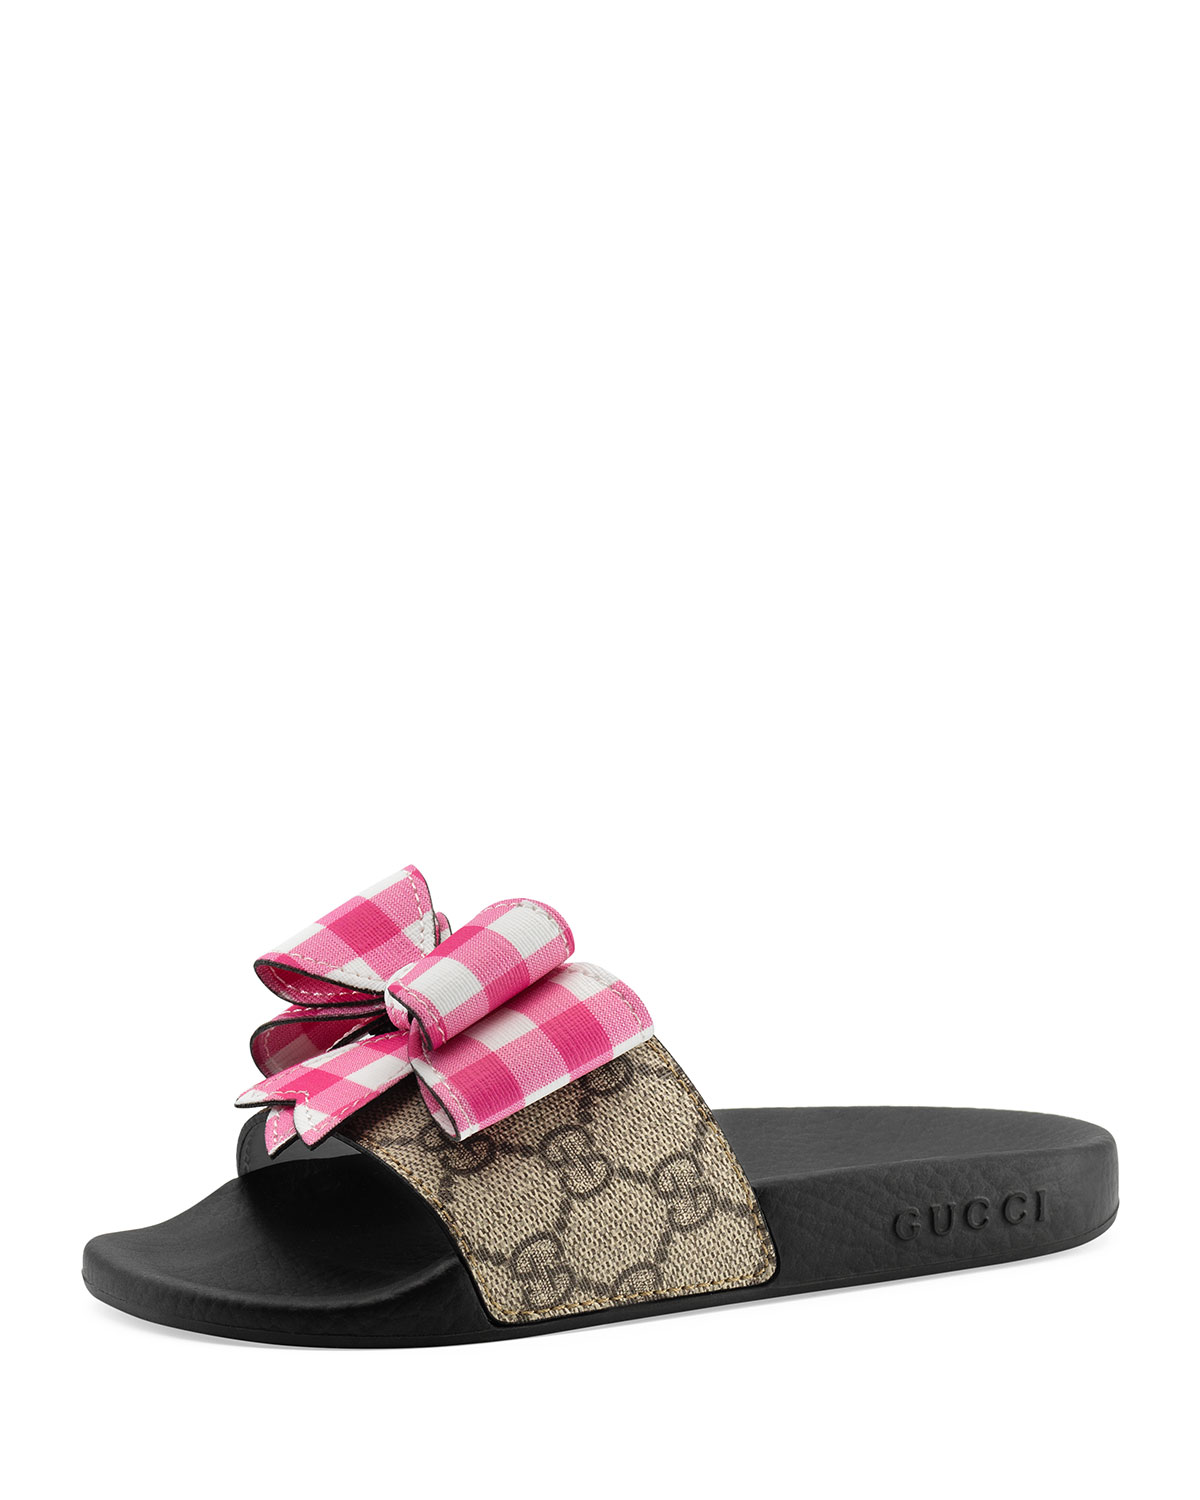 866567e6d34f Gucci Pursuit GG Supreme Slide Sandal w  Bow